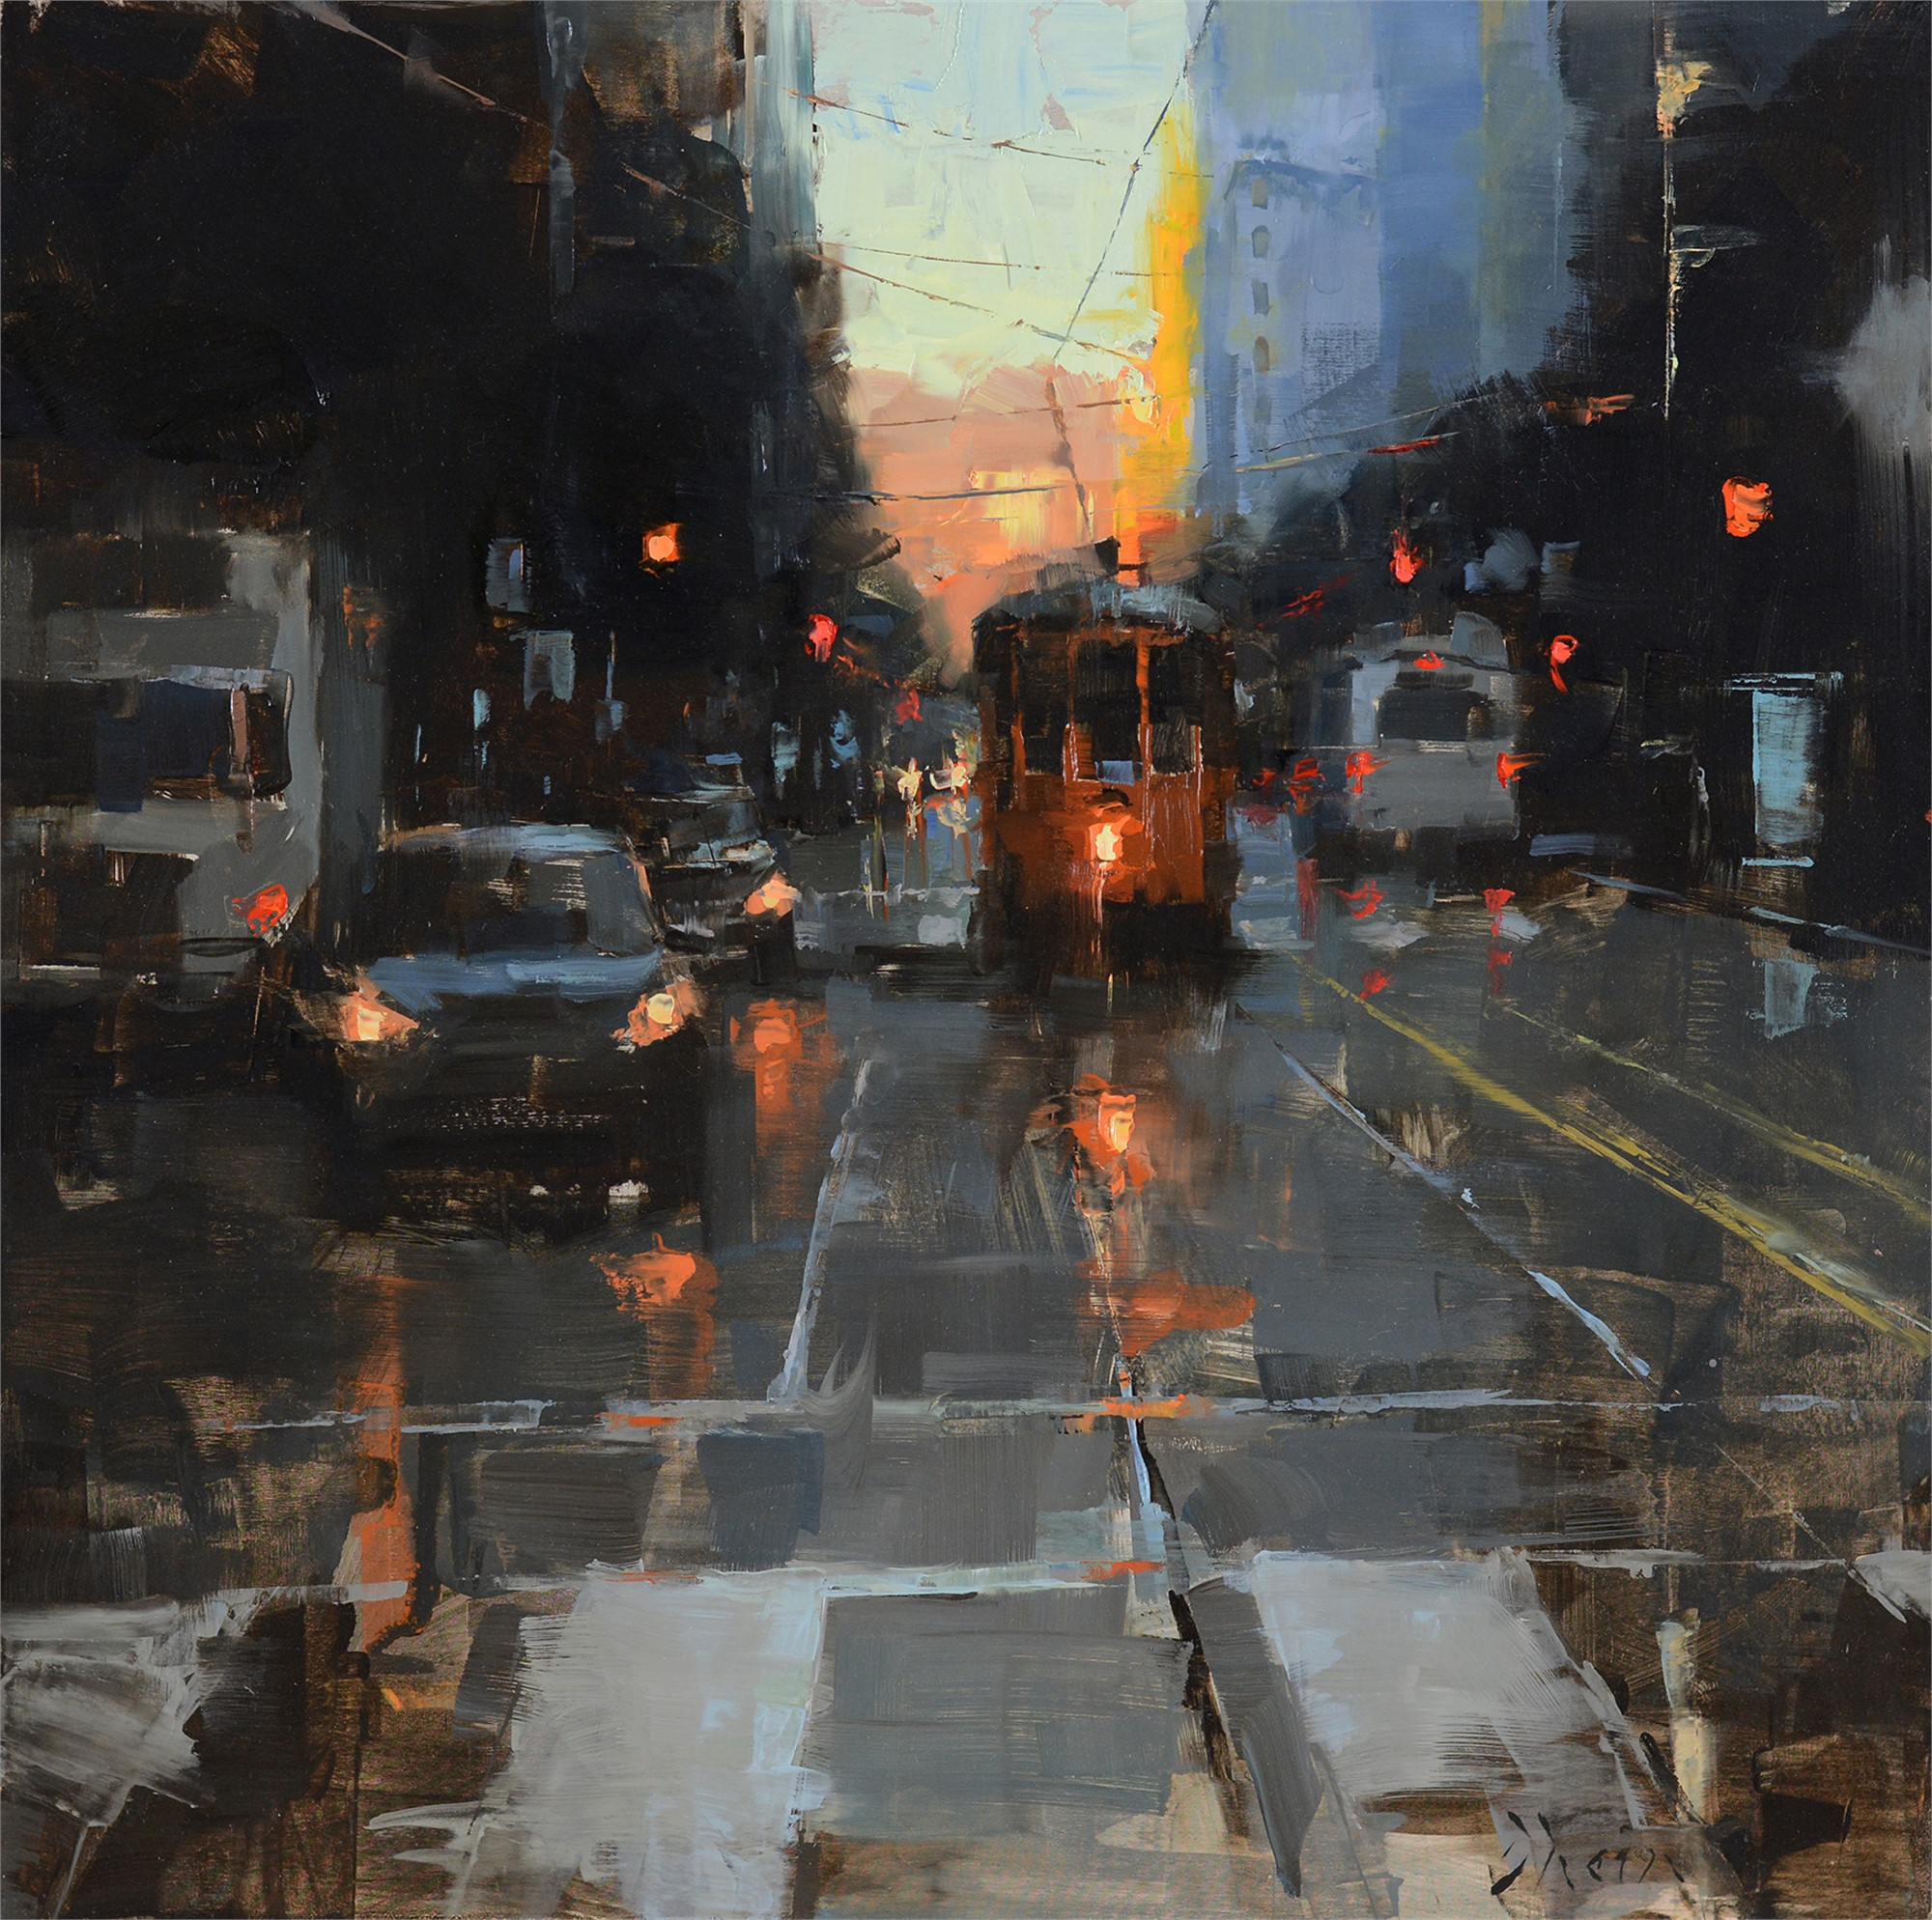 Morning Trolley on Market Street by Jacob Dhein